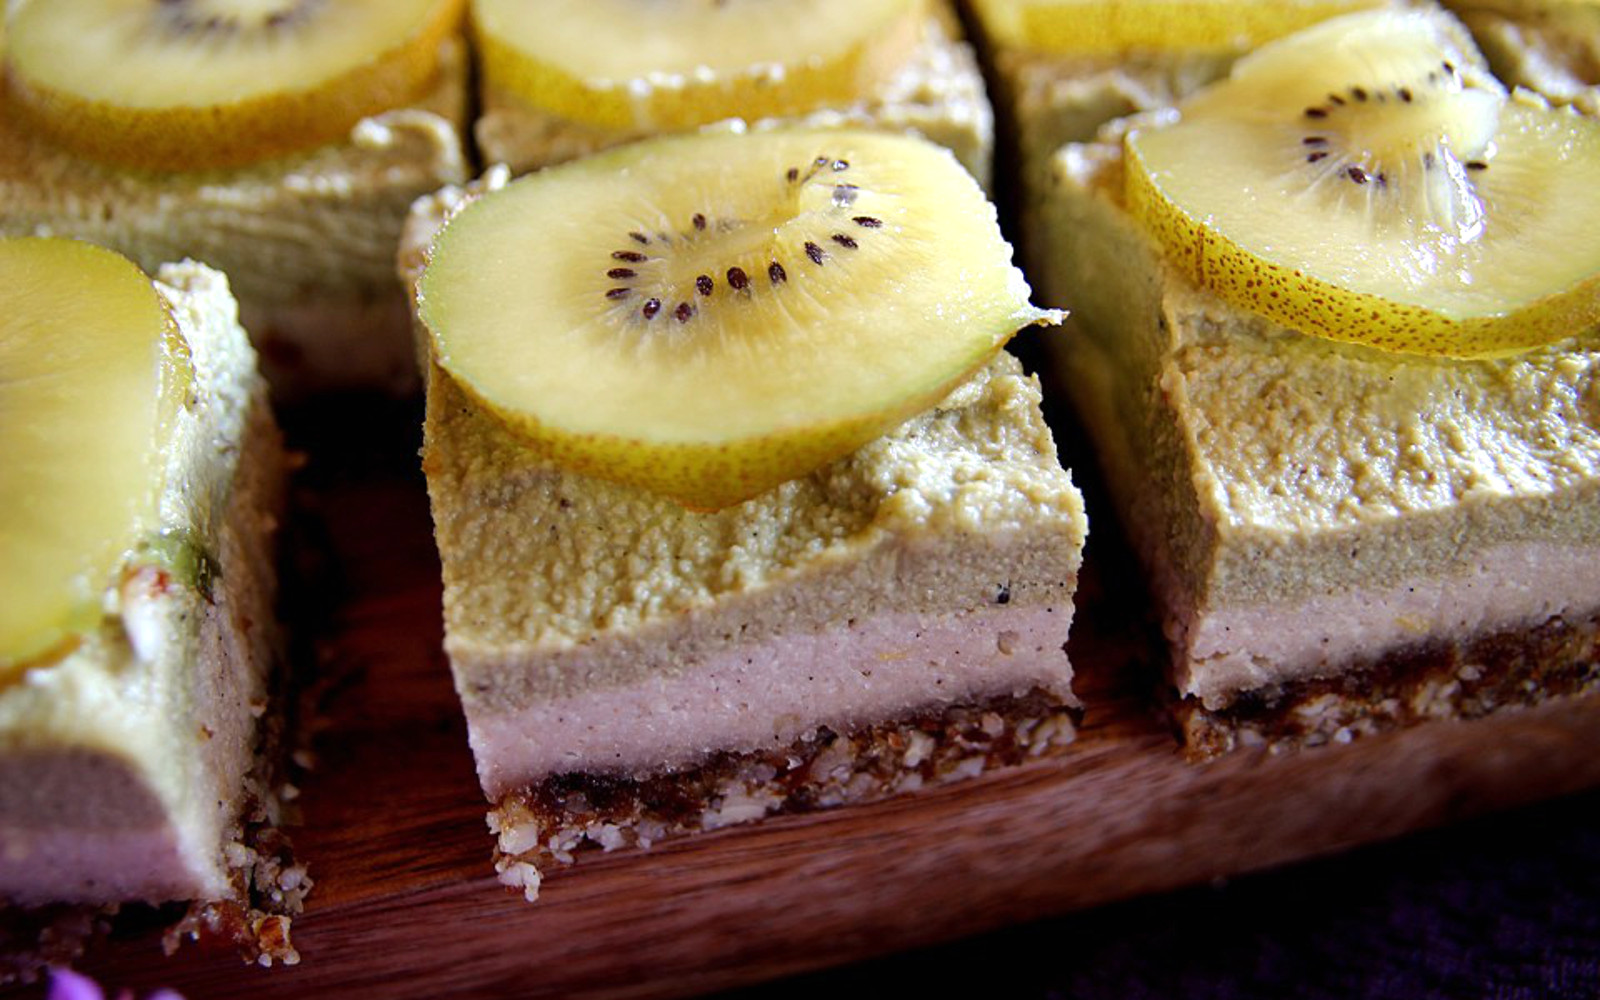 Matcha and Lime Cheesecake Slices